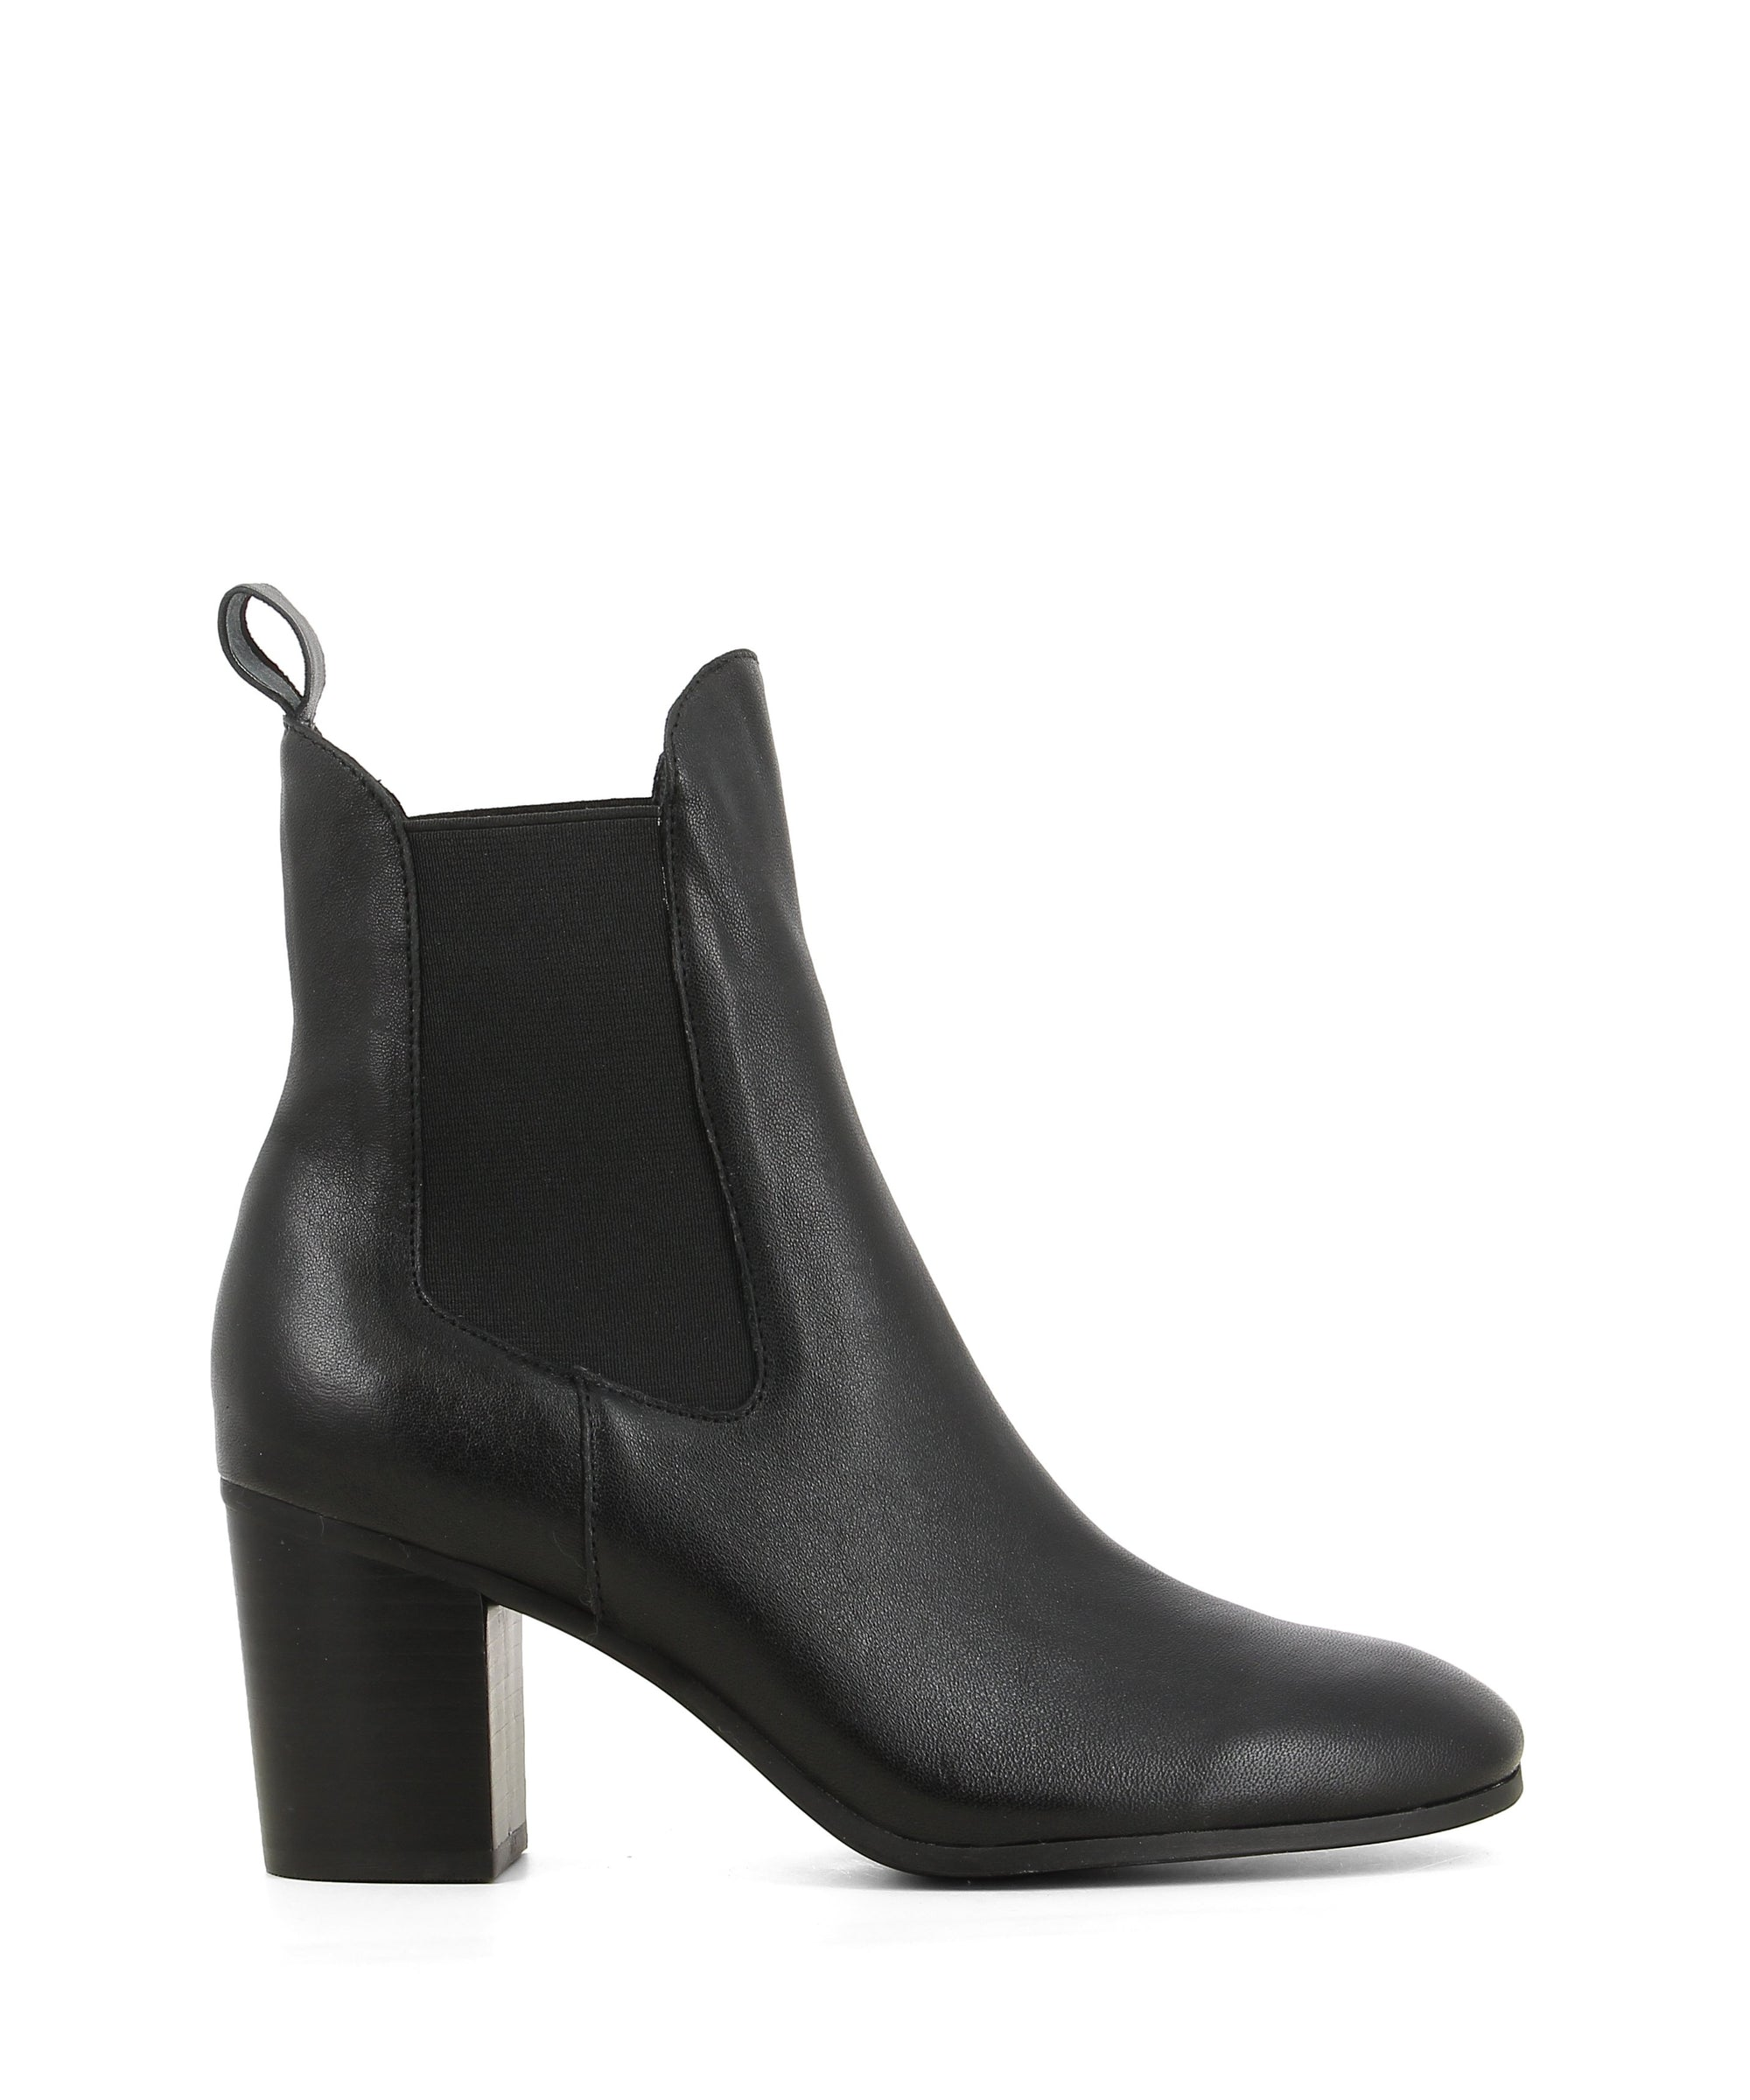 A black leather heeled Chealsea boot that features elastic side gussets, a 7cm block heel and a soft square toe by Django & Juliette. This style runs true to size.